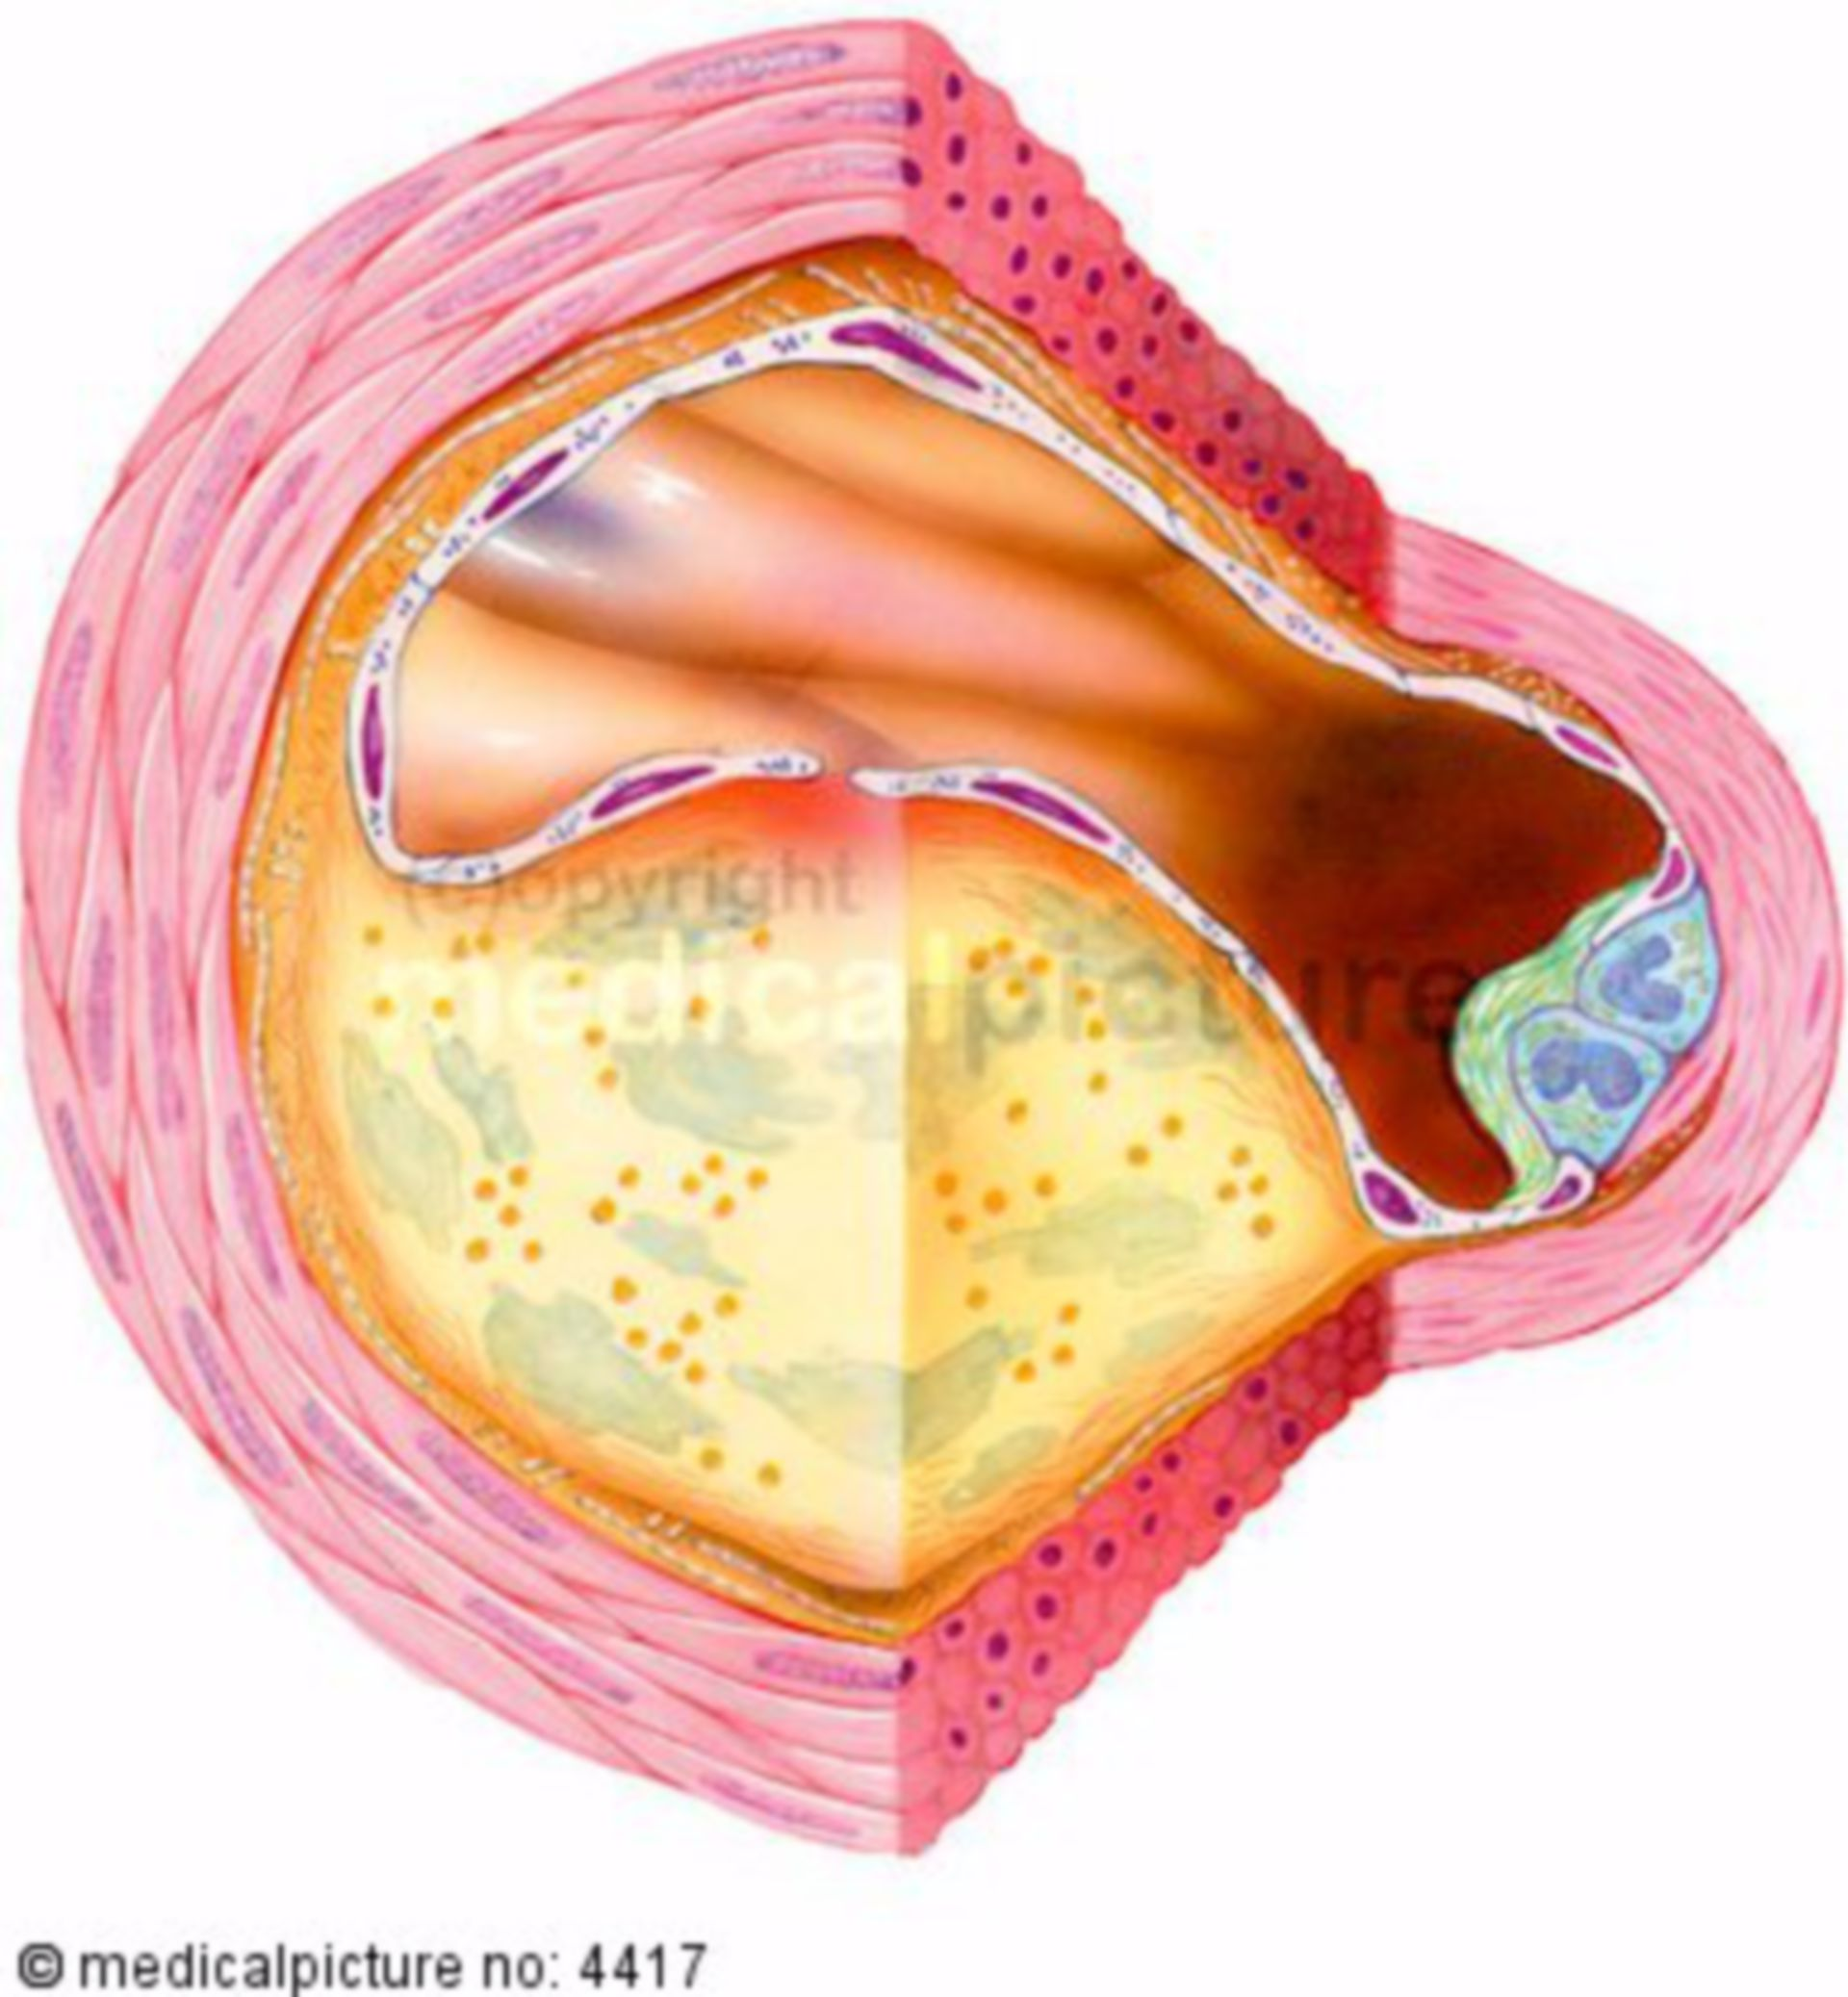 Artery with atherosclerosis, arterial wall